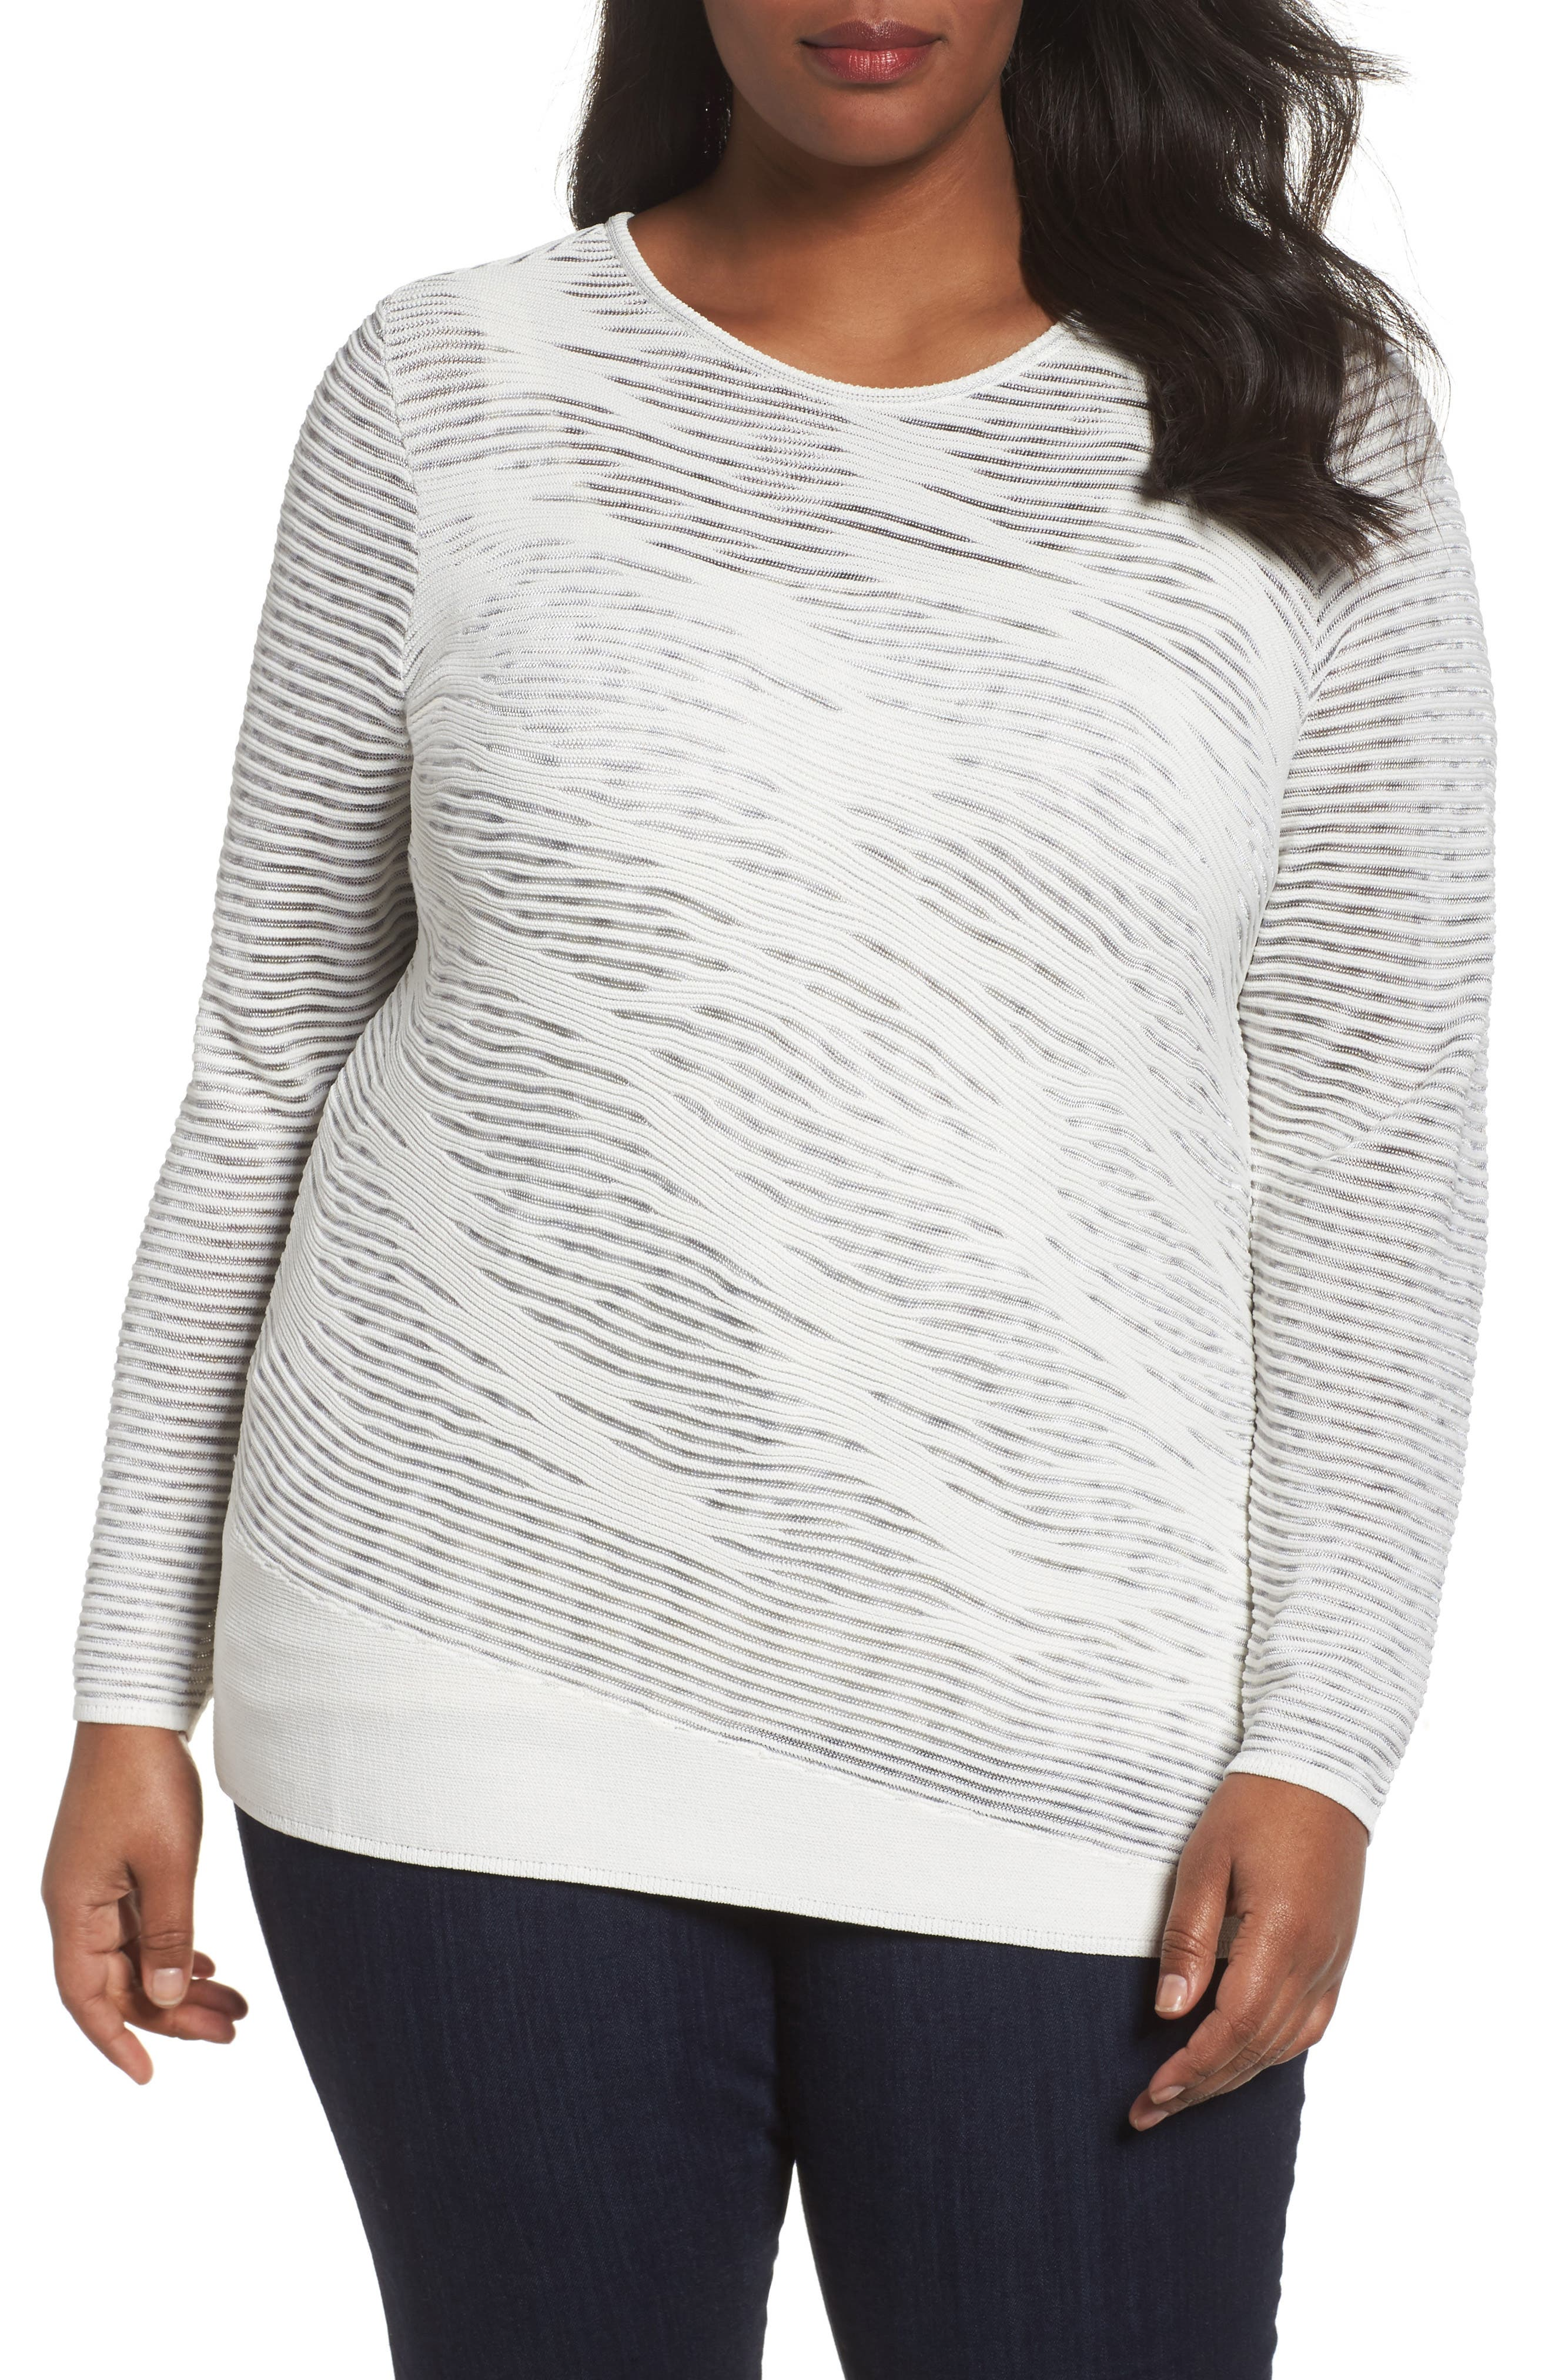 This Is Living Knit Top,                         Main,                         color, Paper White